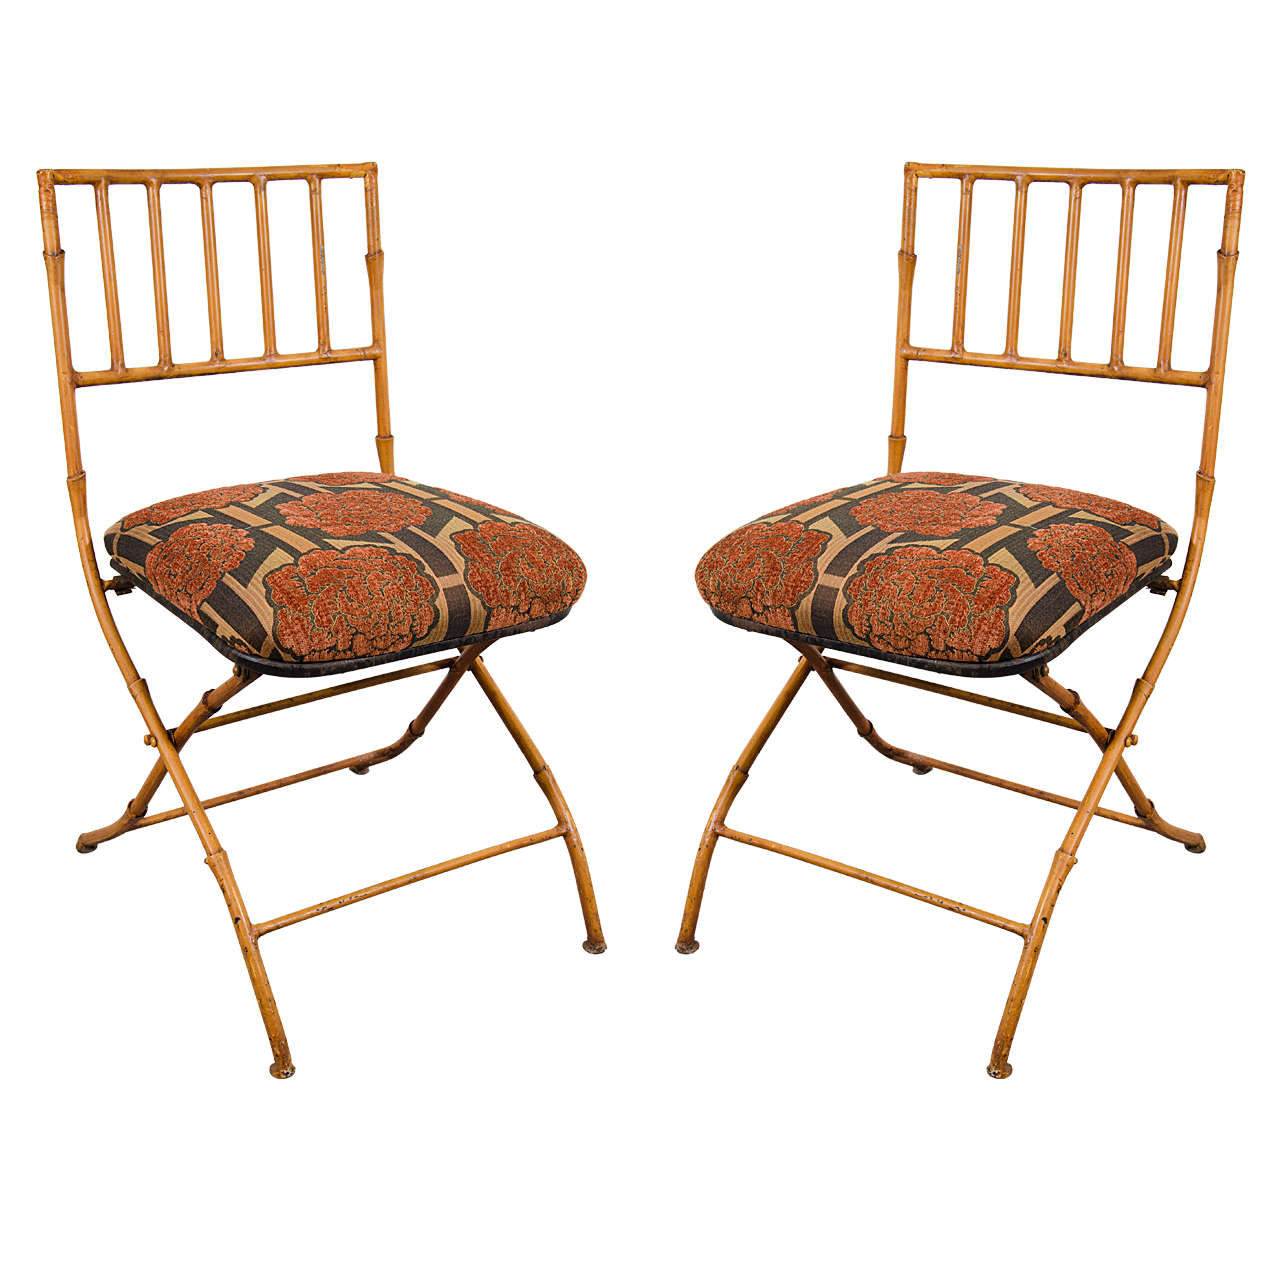 Midcentury Pair Of French Iron Faux Bamboo Folding Chairs At 1stdibs